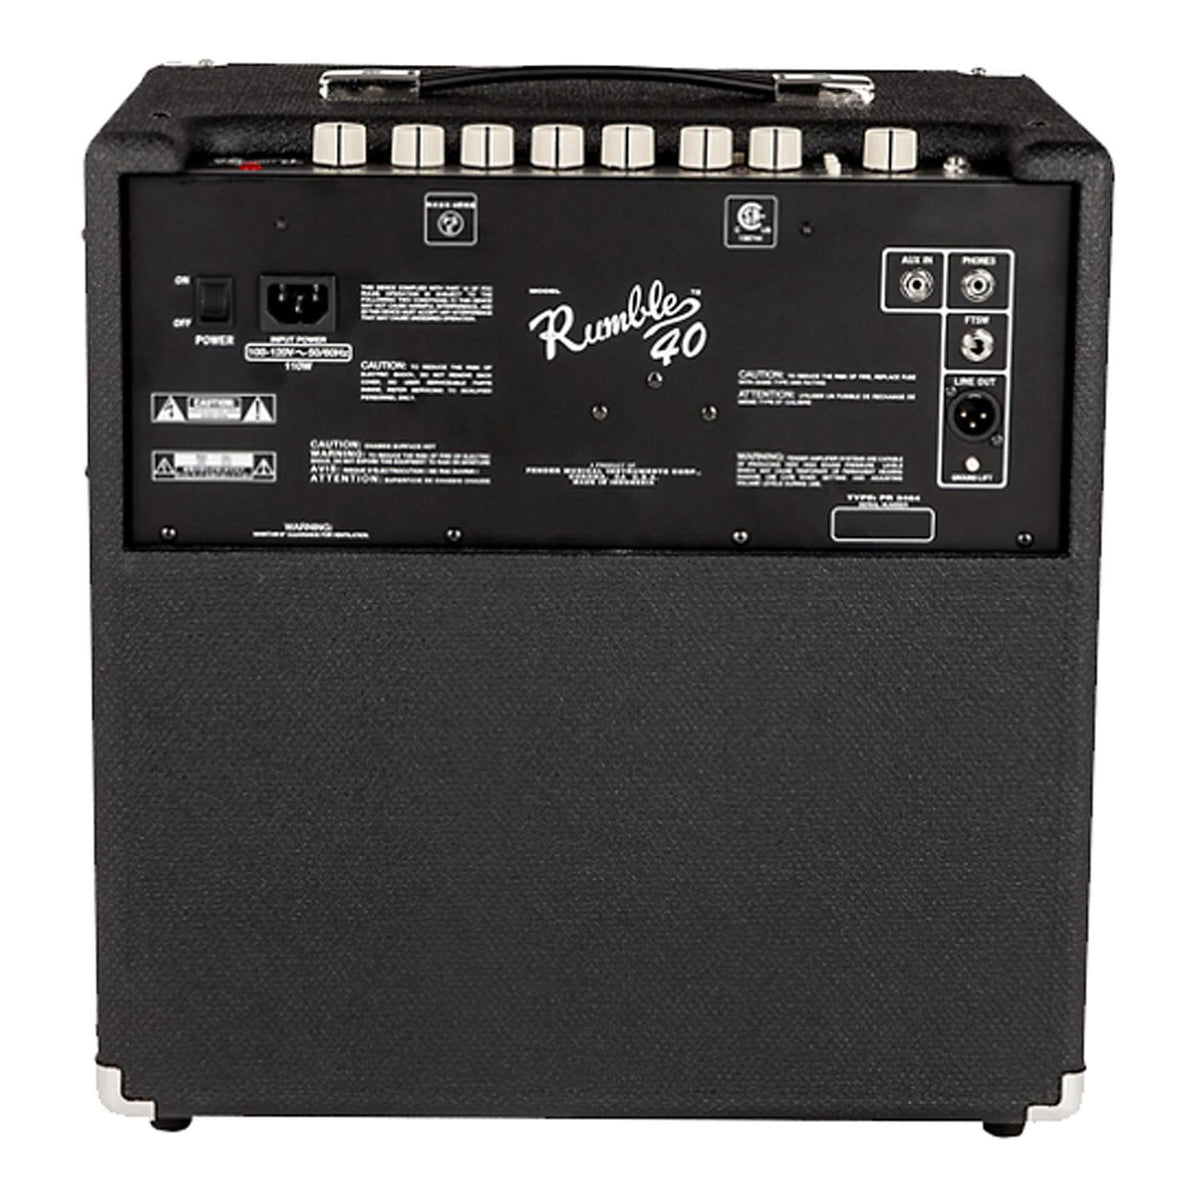 Fender Amp Bass Rumble 40 Black 40W 1X10 - Garrett Park Guitars  - 4